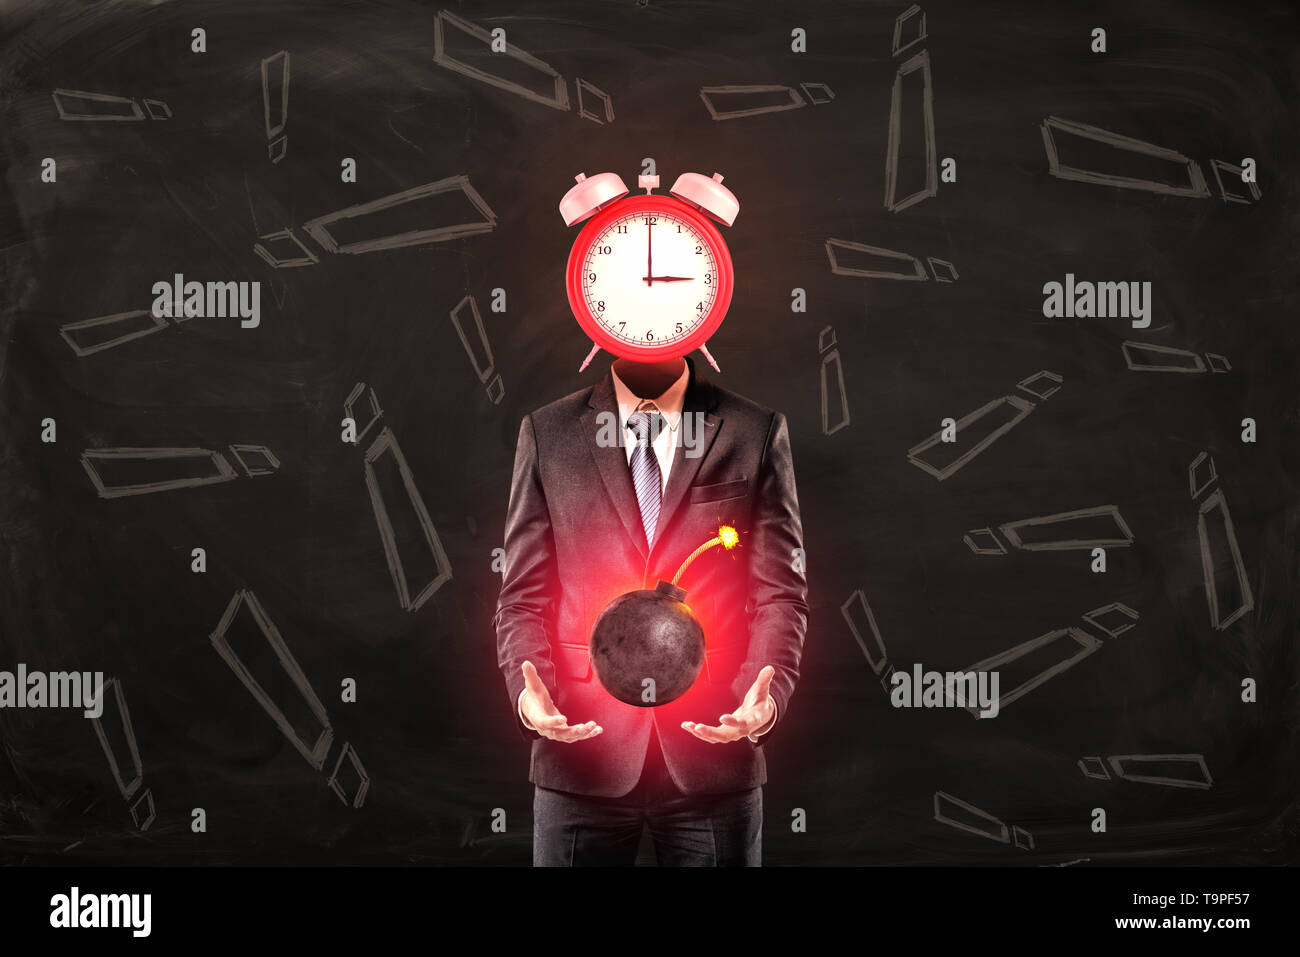 Businessman with clock instead of head holding ball bomb with fuse on black background with exclamation sign pattern - Stock Image